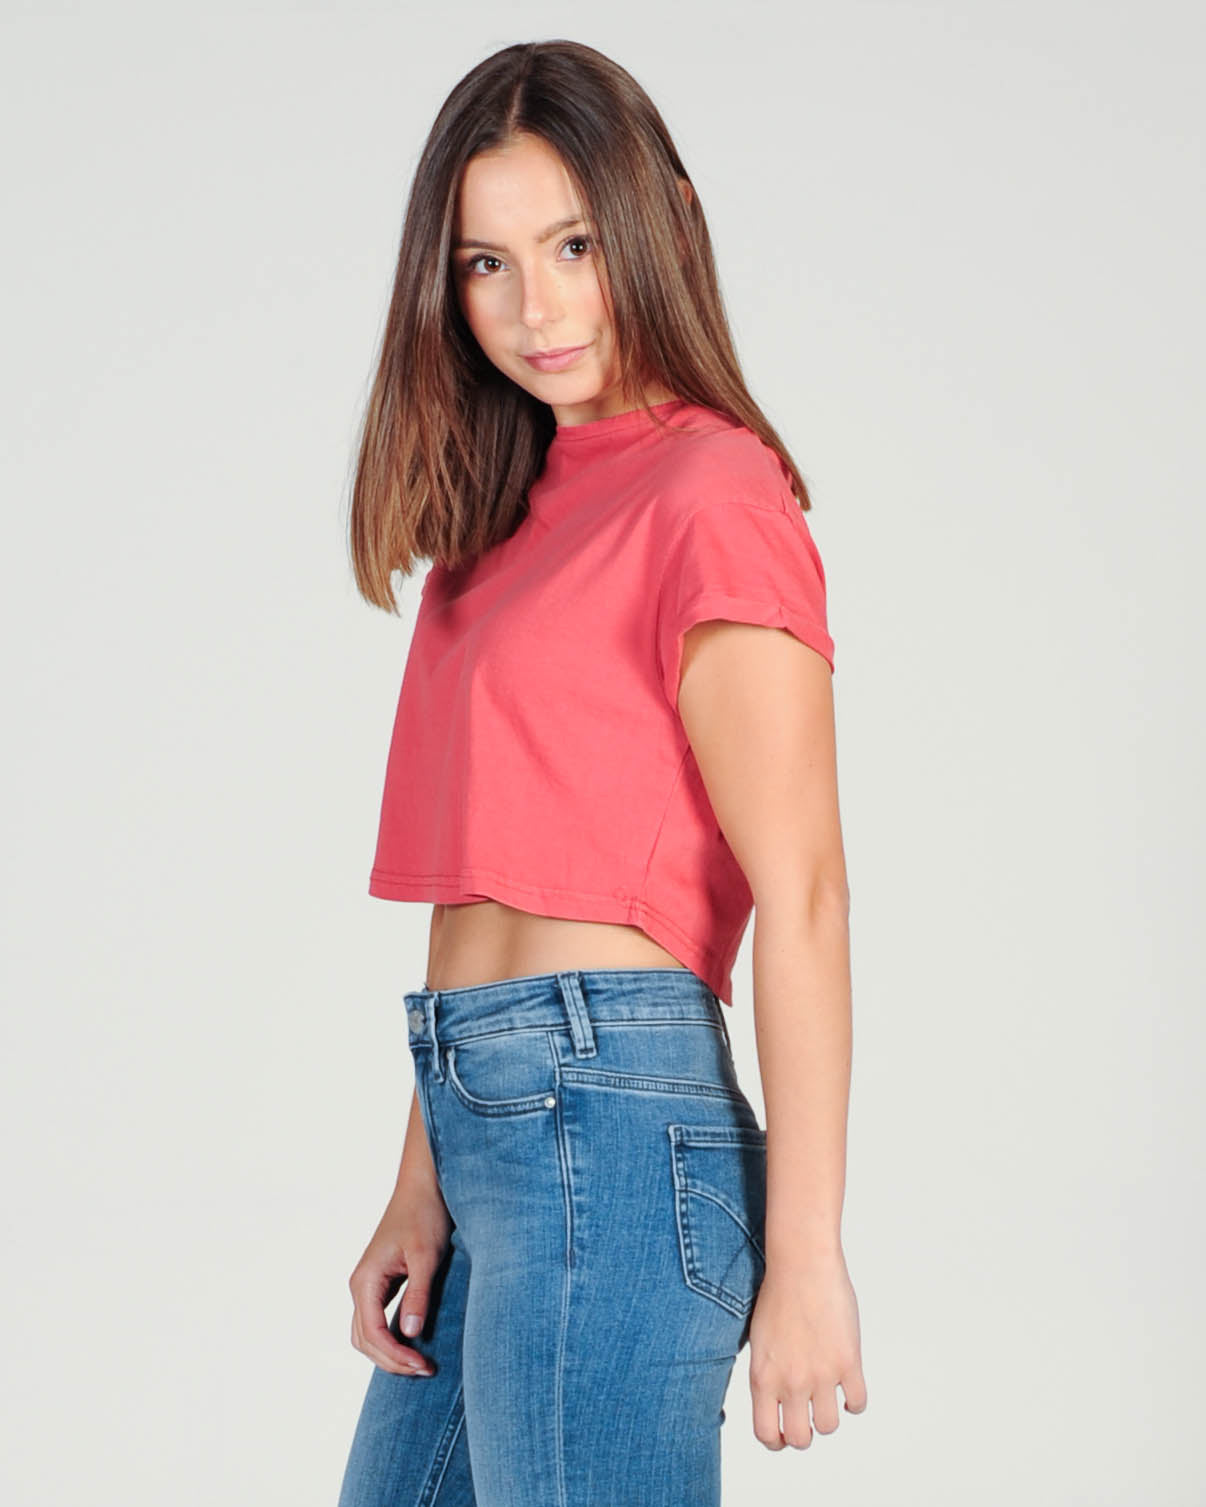 Silent Theory Bite The Bullet Crop Top - Red